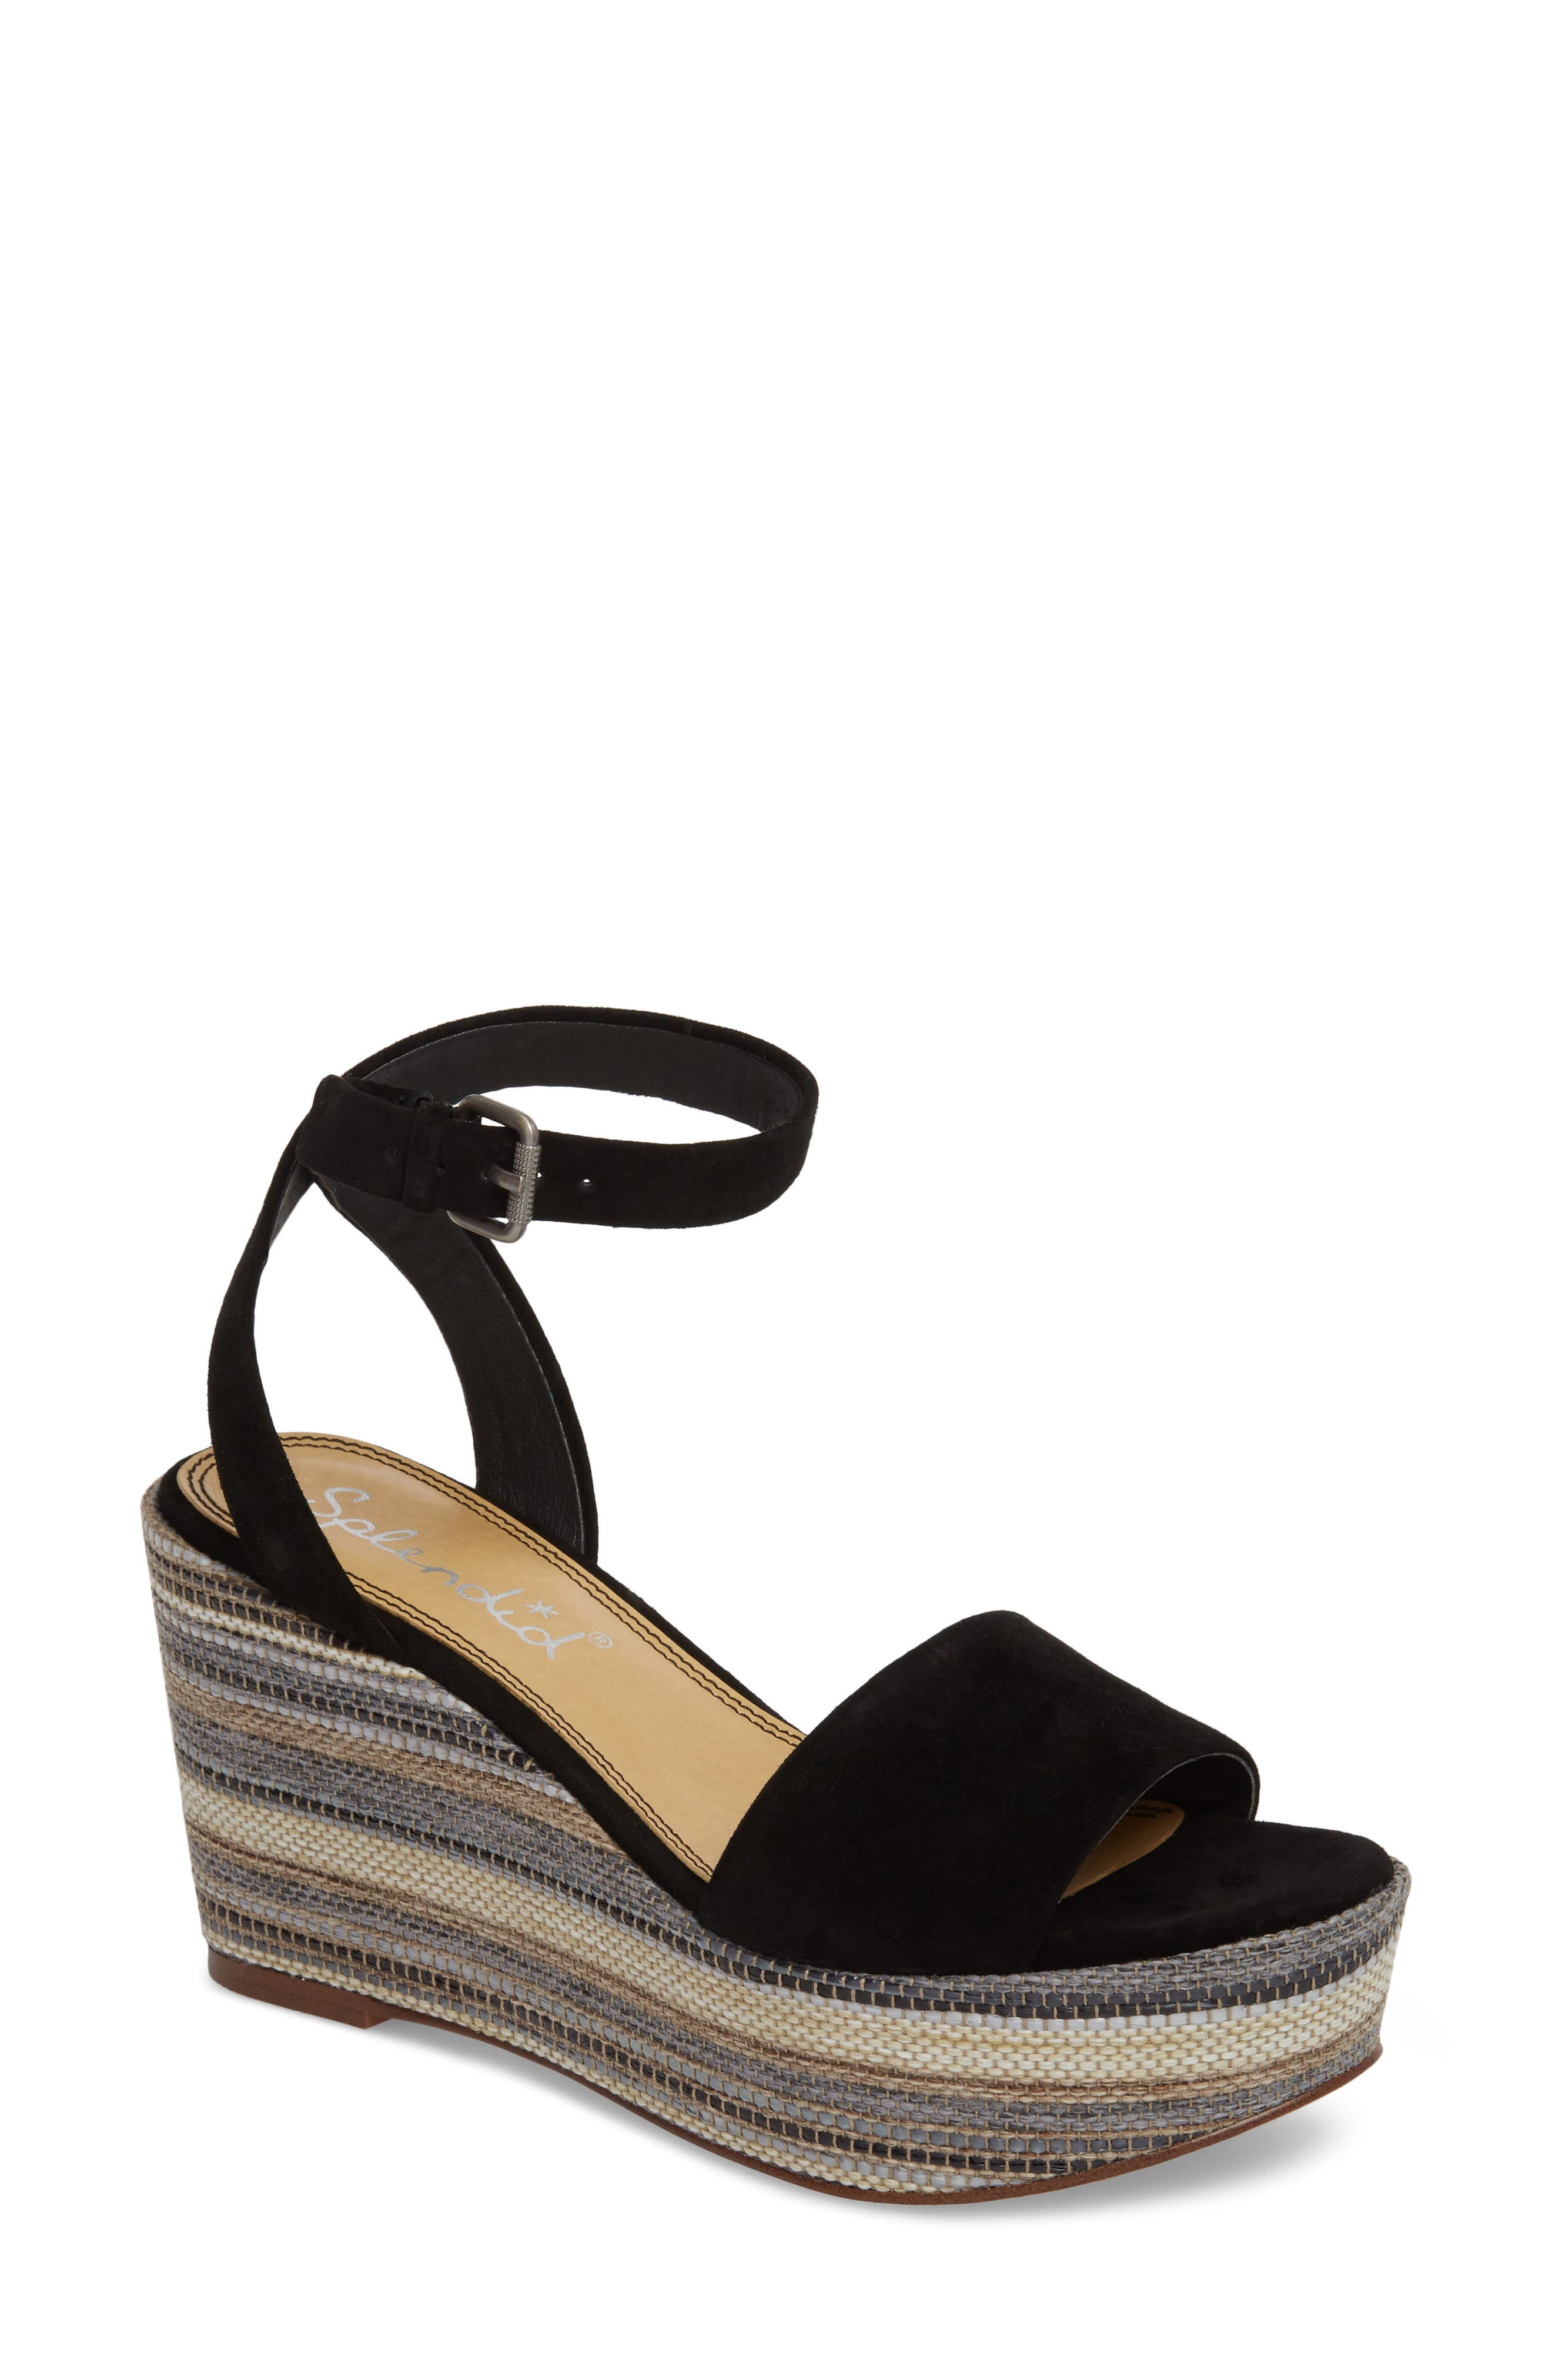 Felix Platform Wedge Sandal,                             Main thumbnail 1, color,                             Black Multi Suede